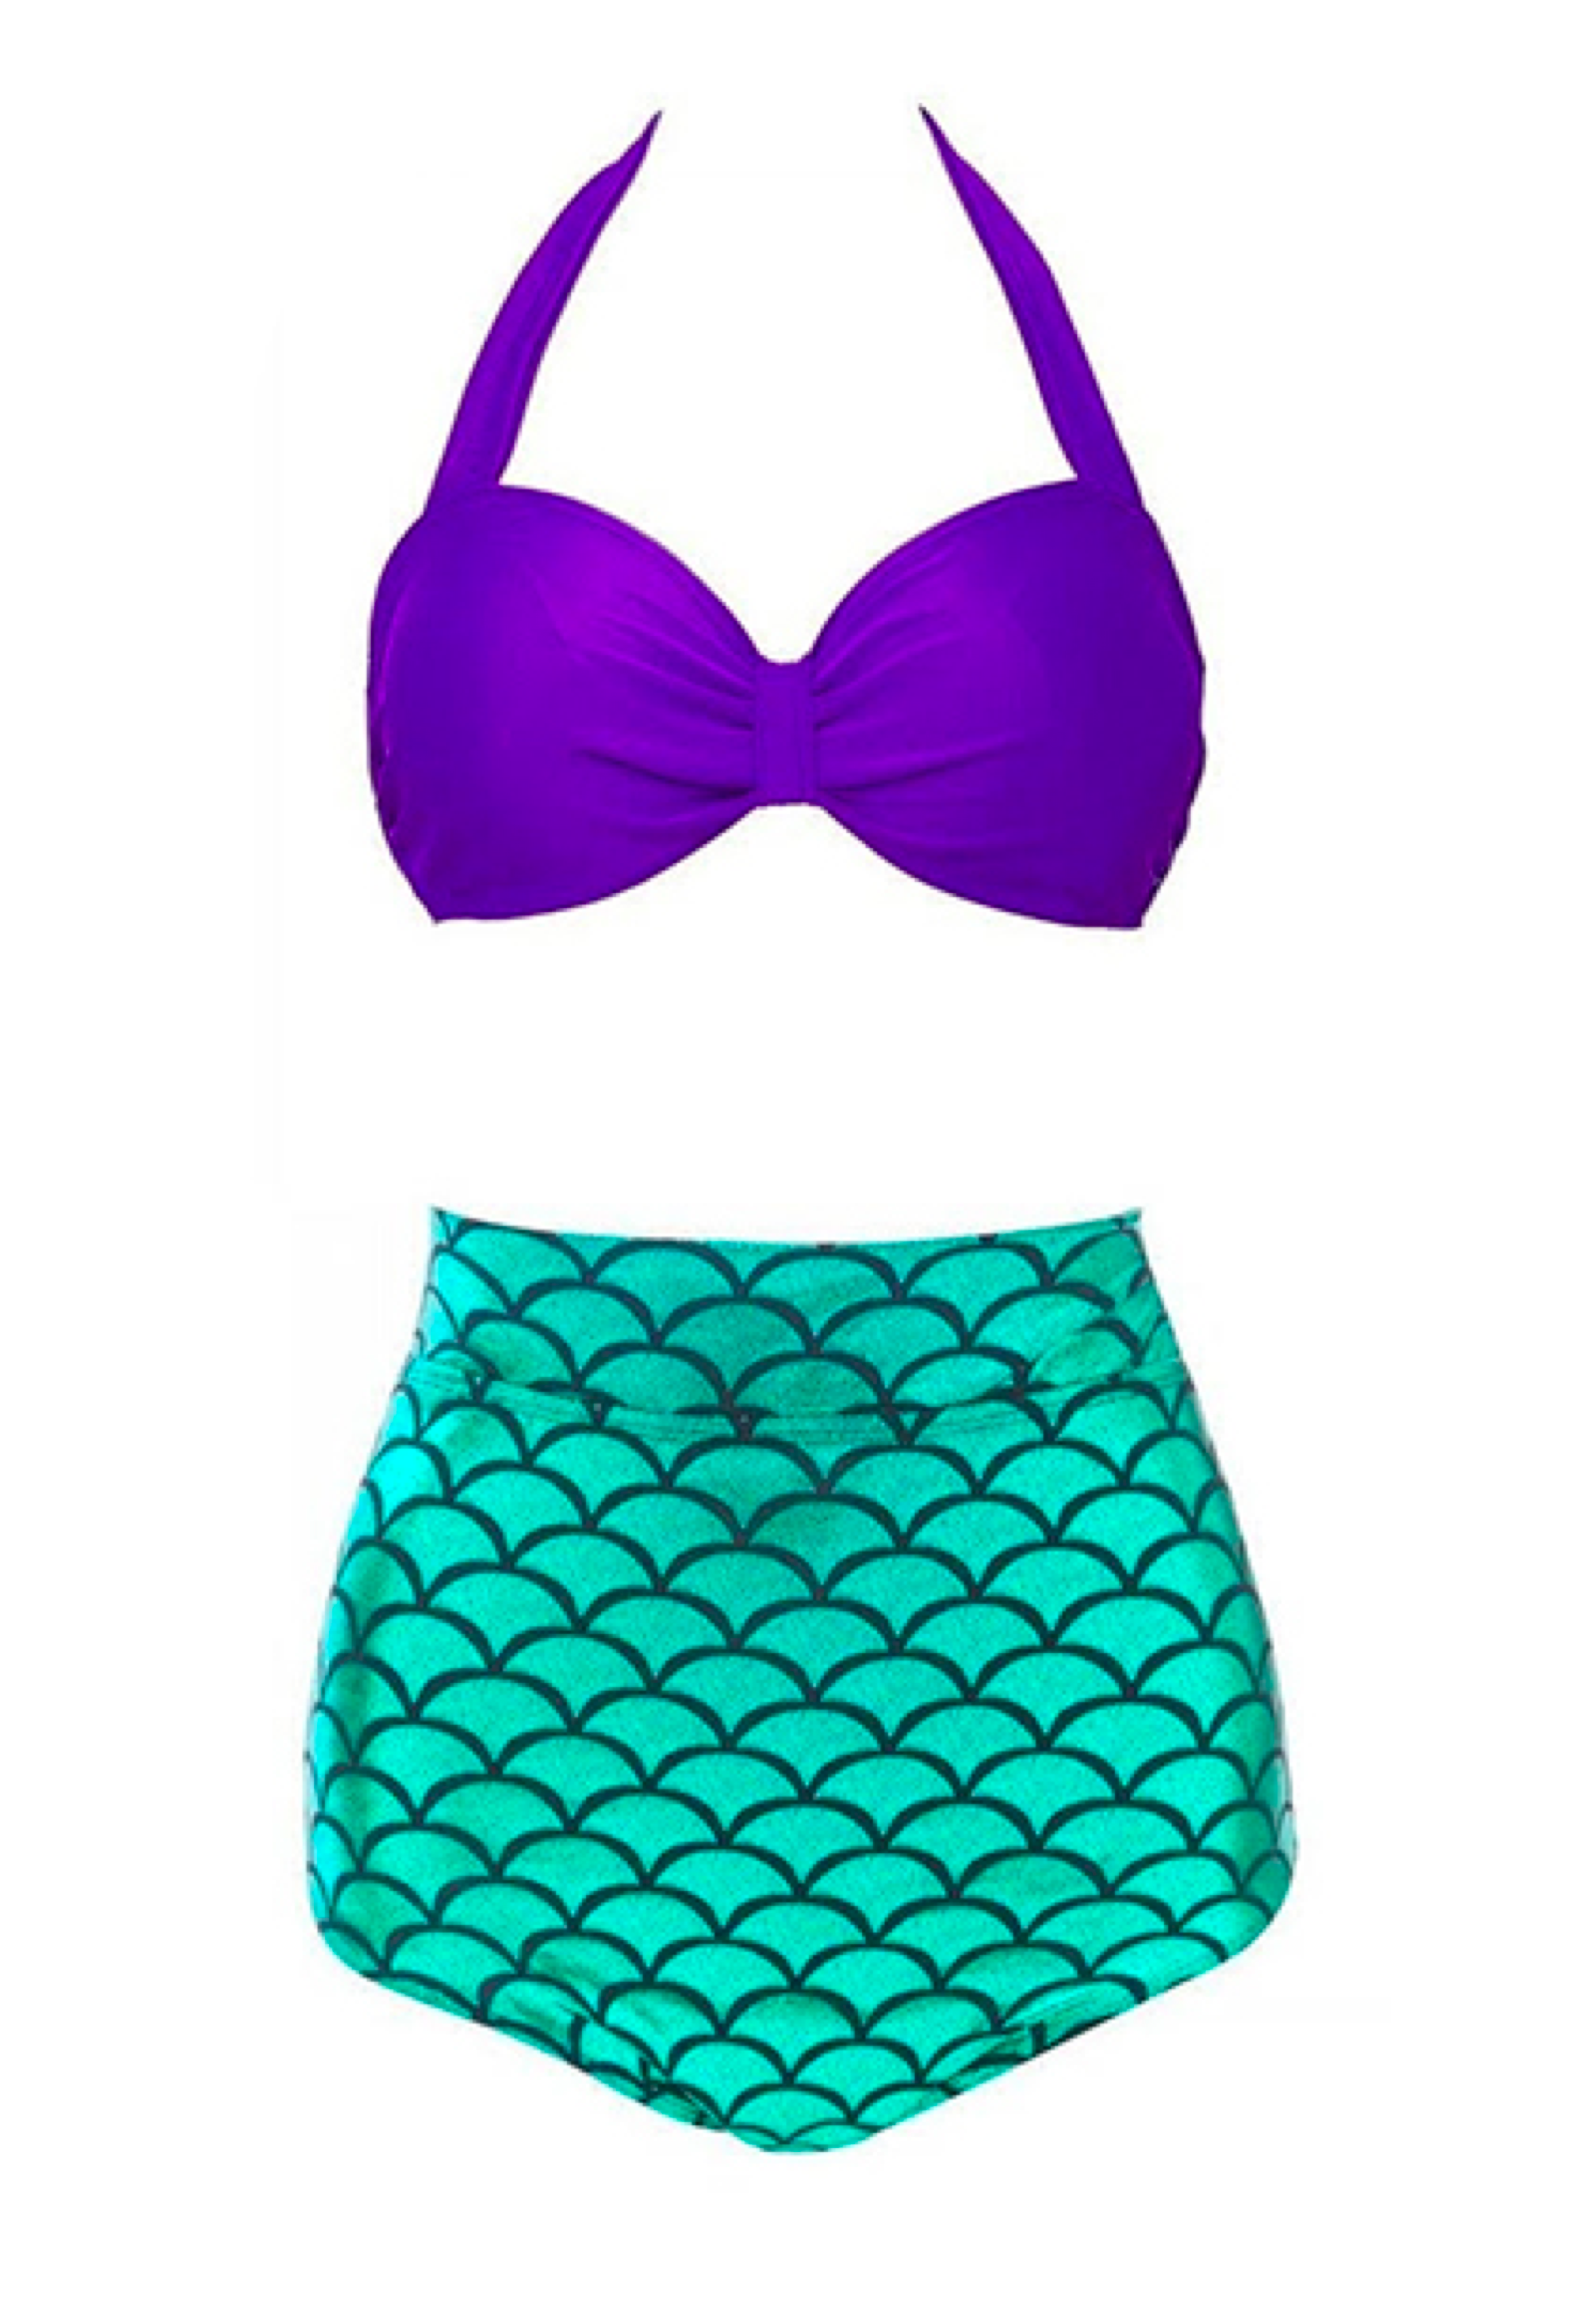 dd2022a6e Brighten up the beach with this fun two-piece suit